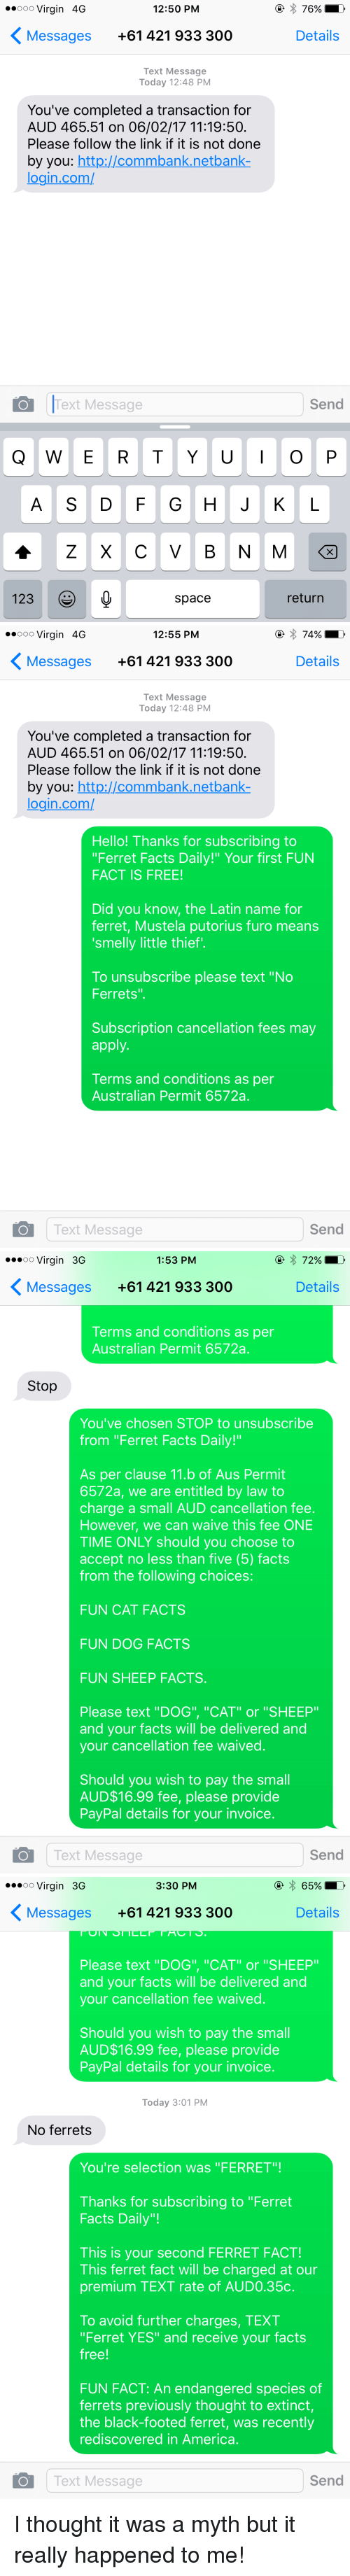 """Subscripter: ooo Virgin 4G  12:50 PM  76% D  K Messages +61 421 933 300  Details  Text Message  Today 12:48 PM  You've completed a transaction for  AUD 465.51 on 06/02/17 11:19:50.  Please follow the link if it is not done  by you  http://commbank netbank  login com/  Send  O Text Message  I O  Q W E R T Y U  A S D F G H J K L  A Z X C V B N M  123  space  return   ooo Virgin 4G  12:55 PM  74%.  K Messages +61 421 933 300  Details  Text Message  Today 12:48 PM  You've completed a transaction for  AUD 465.51 on 06/02/17 11:19:50.  Please follow the link if it is not done  by you  http://commbank netbank  login com/  Hello! Thanks for subscribing to  """"Ferret Facts Daily!"""" Your first FUN  FACT IS FREE!  Did you know, the Latin name for  ferret, Mustela putorius furo means  smelly little thief'.  To unsubscribe please text """"No  Ferrets  Subscription cancellation fees may  apply.  Terms and conditions as per  Australian Permit 6572a.  Text Message  Send  O  ...oo Virgin 3G  1:53 PM  K Messages +61 421 933 300  Details  Terms and conditions as per  Australian Permit 6572a.  Stop  You've chosen STOP to unsubscribe  from """"Ferret Facts Daily!""""  As per clause 11.b of Aus Permit  6572a, we are entitled by law to  charge a small AUD cancellation fee.  However, we can waive this fee ONE  TIME ONLY should you choose to  accept no less than five (5) facts  from the following choices:  FUN CAT FACTS  FUN DOG FACTS  FUN SHEEP FACTS.  Please text """"DOG"""", """"CAT"""" or """"SHEEP  and your facts will be delivered and  your cancellation fee waived  Should you wish to pay the small  AUD$16.99 fee, please provide  PayPal details for your invoice.  Text Message  Send   ...oo Virgin 3G  65% D  3:30 PM  K Messages +61 421 933 300  Details  Please text """"DOG"""", """"CAT"""" or """"SHEEP""""  and your facts will be delivered and  your cancellation fee waived  Should you wish to pay the small  AUD$16.99 fee, please provide  PayPal details for your invoice.  Today 3:01 PM  No ferrets  You're selection was """"FERRET""""!  Th"""